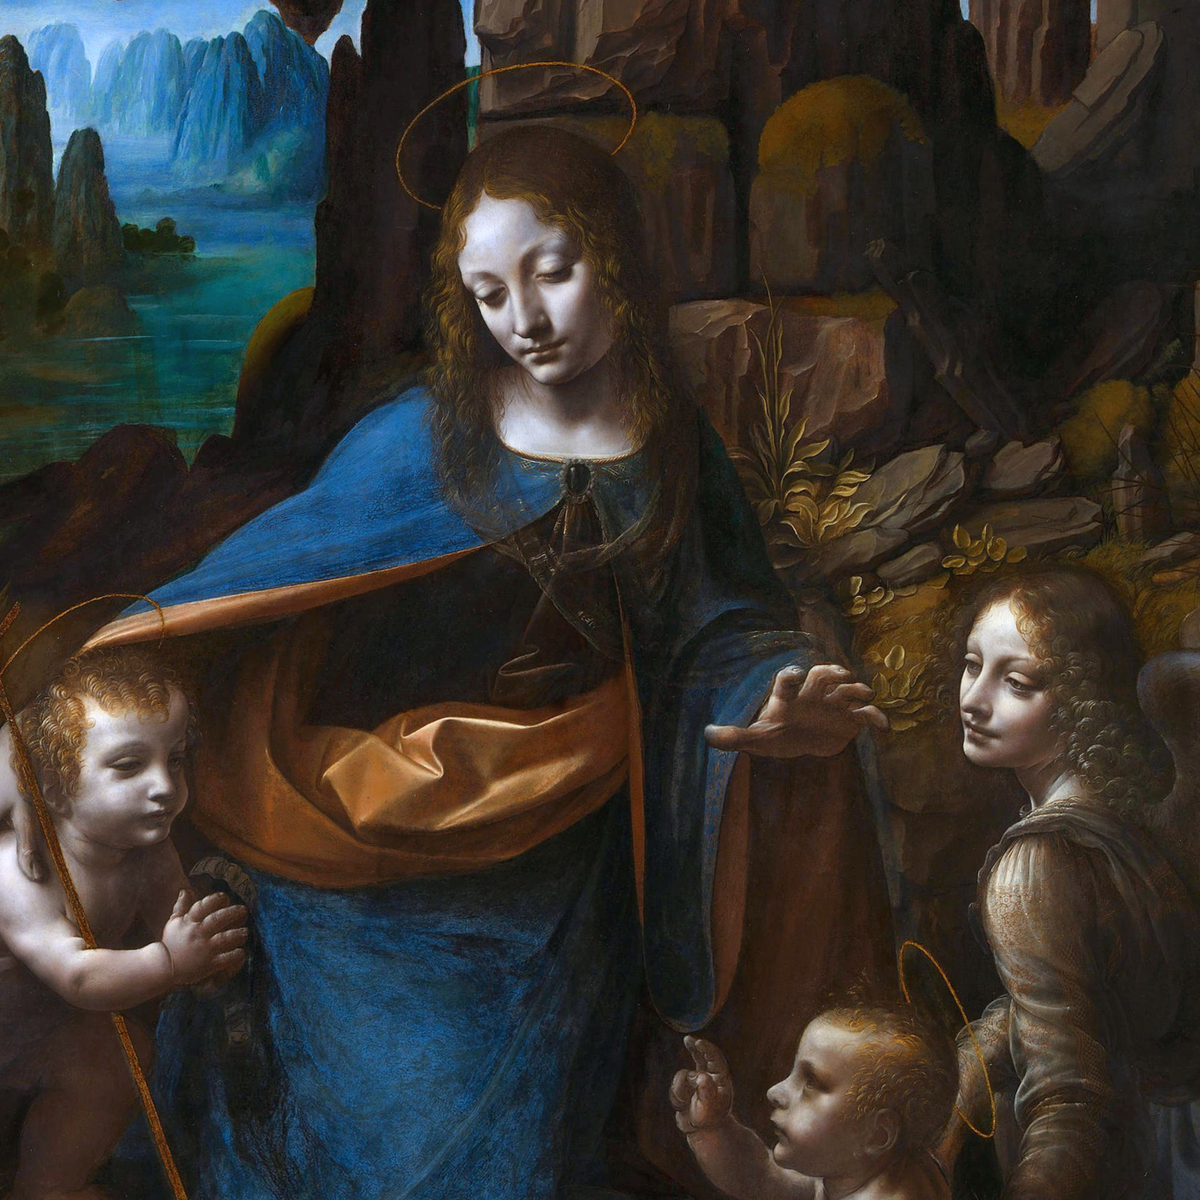 What Leonardo S Depiction Of Virgin Mary And Jesus Tells Us About His Religious Beliefs